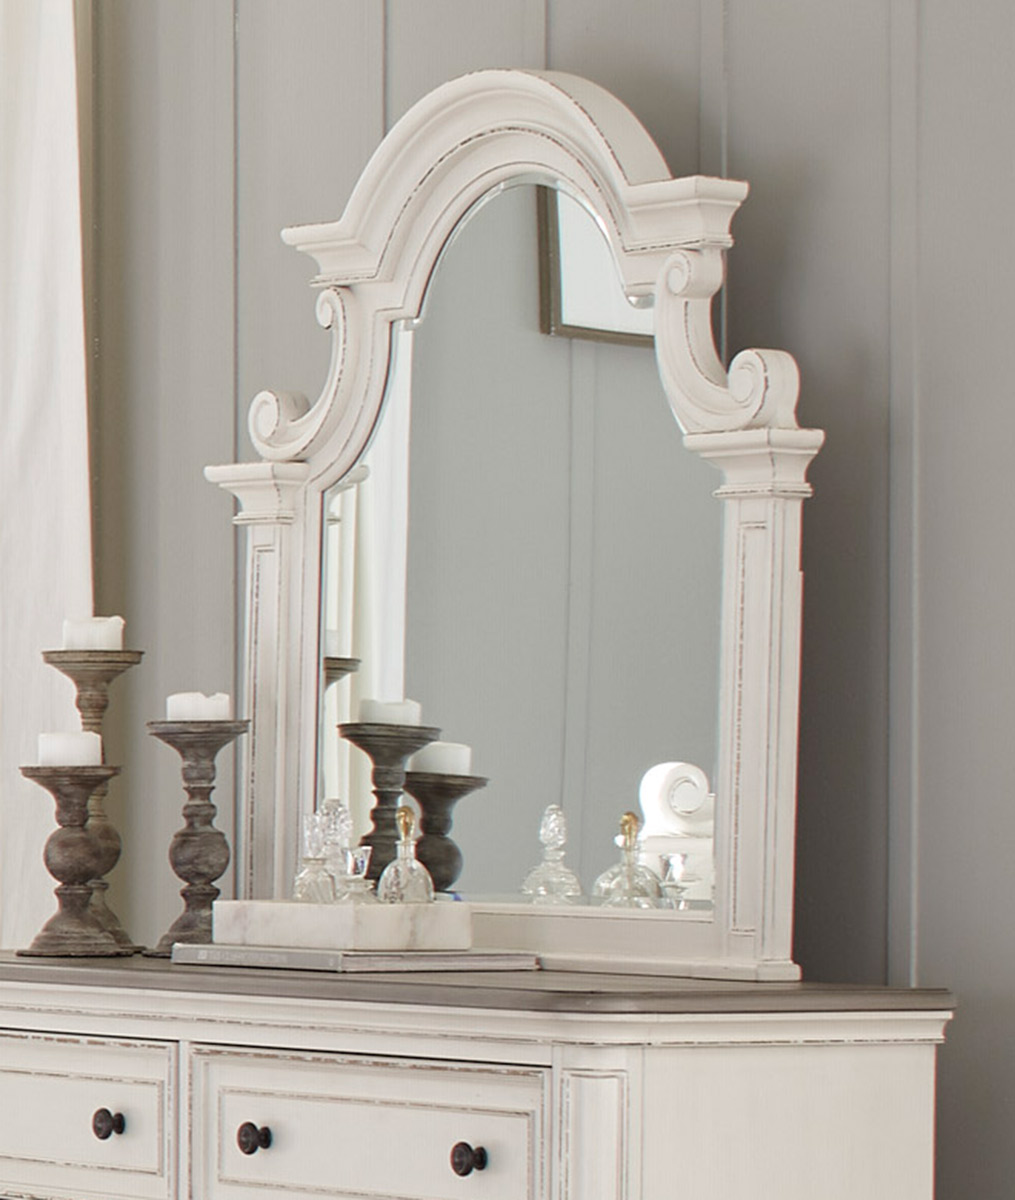 Homelegance Baylesford Mirror - Antique White Rub-Through Finish